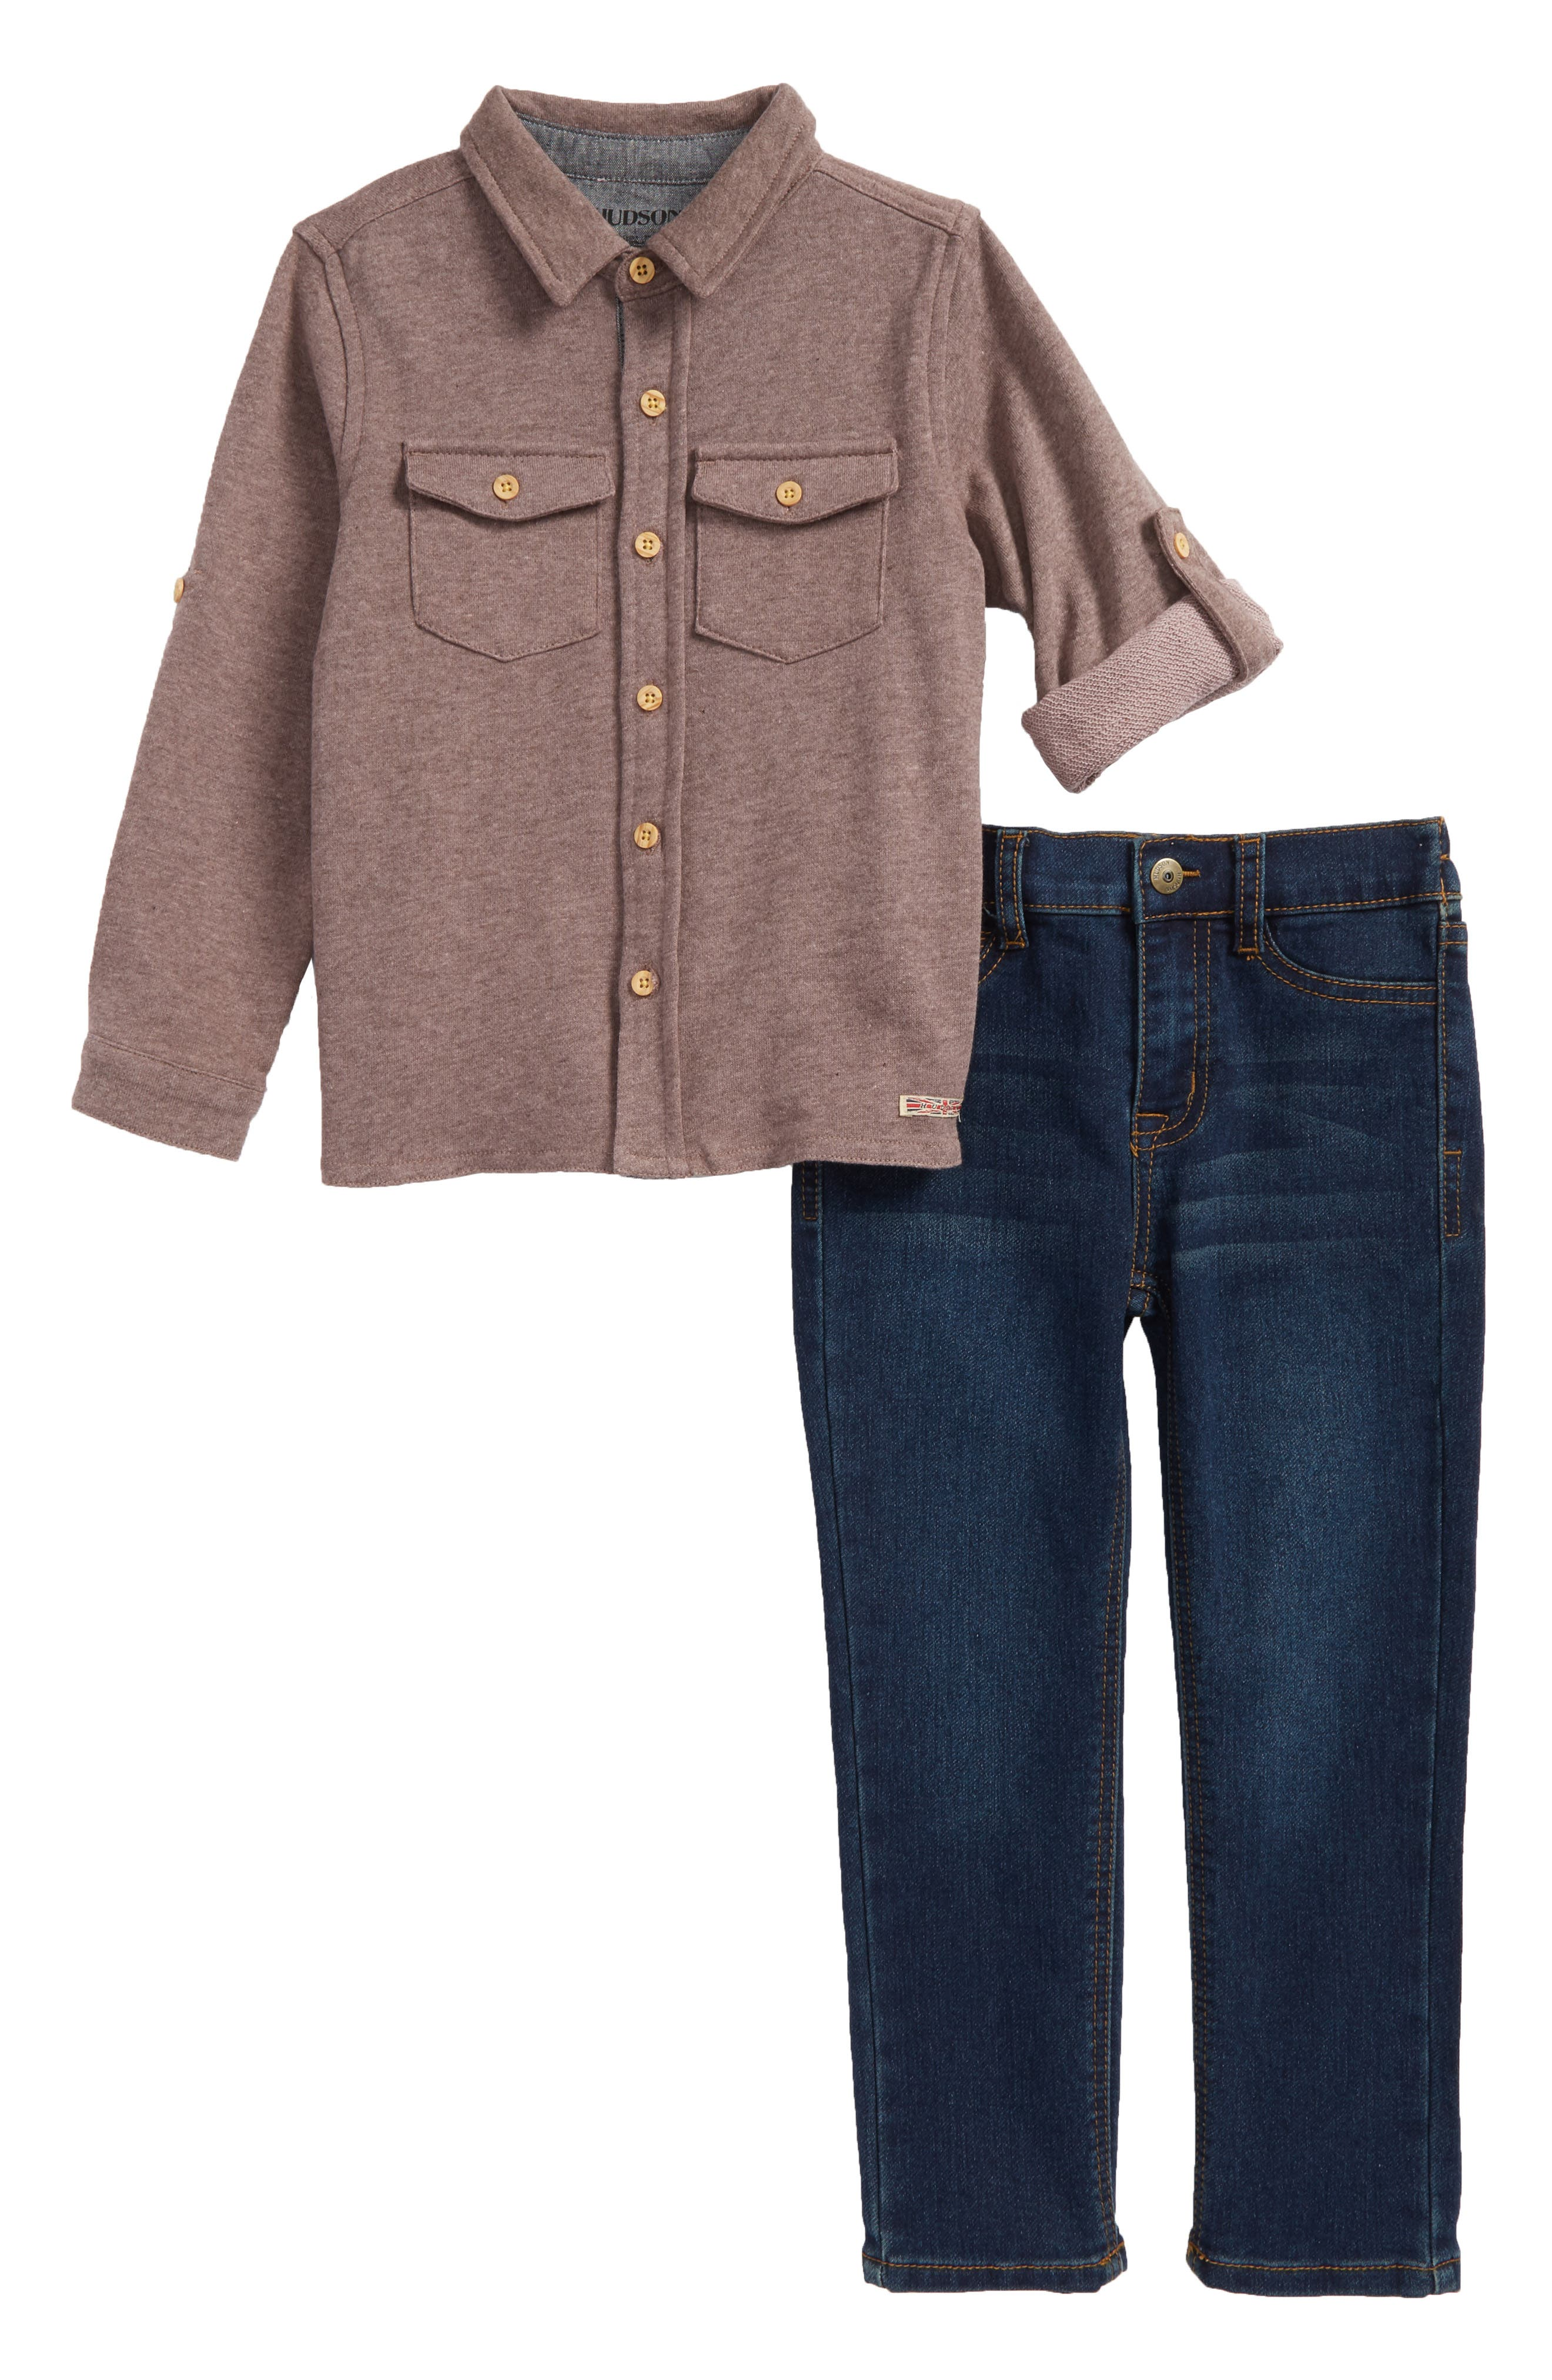 French Terry Shirt & Jeans Set,                         Main,                         color, 491